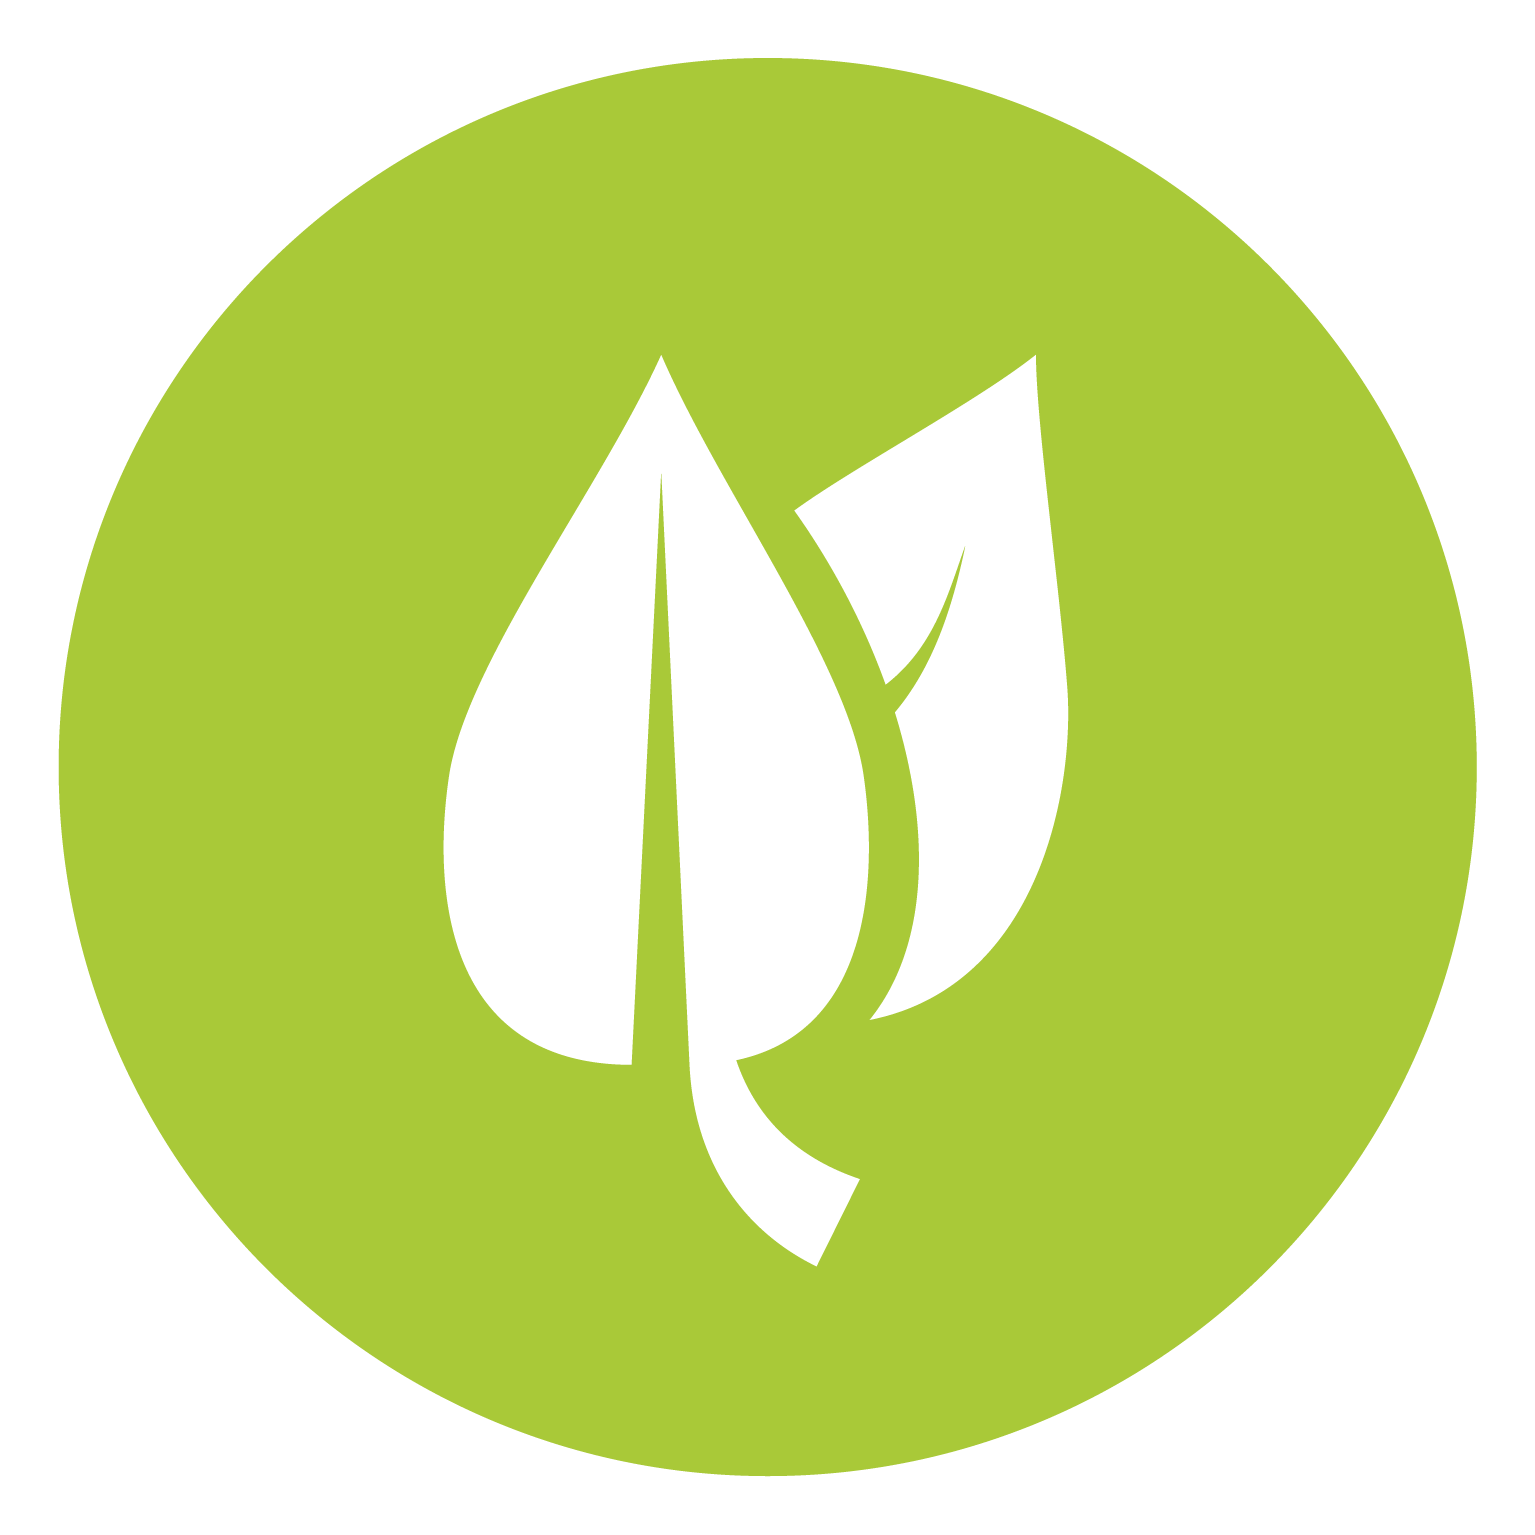 Nature symbol png. Go green icon image